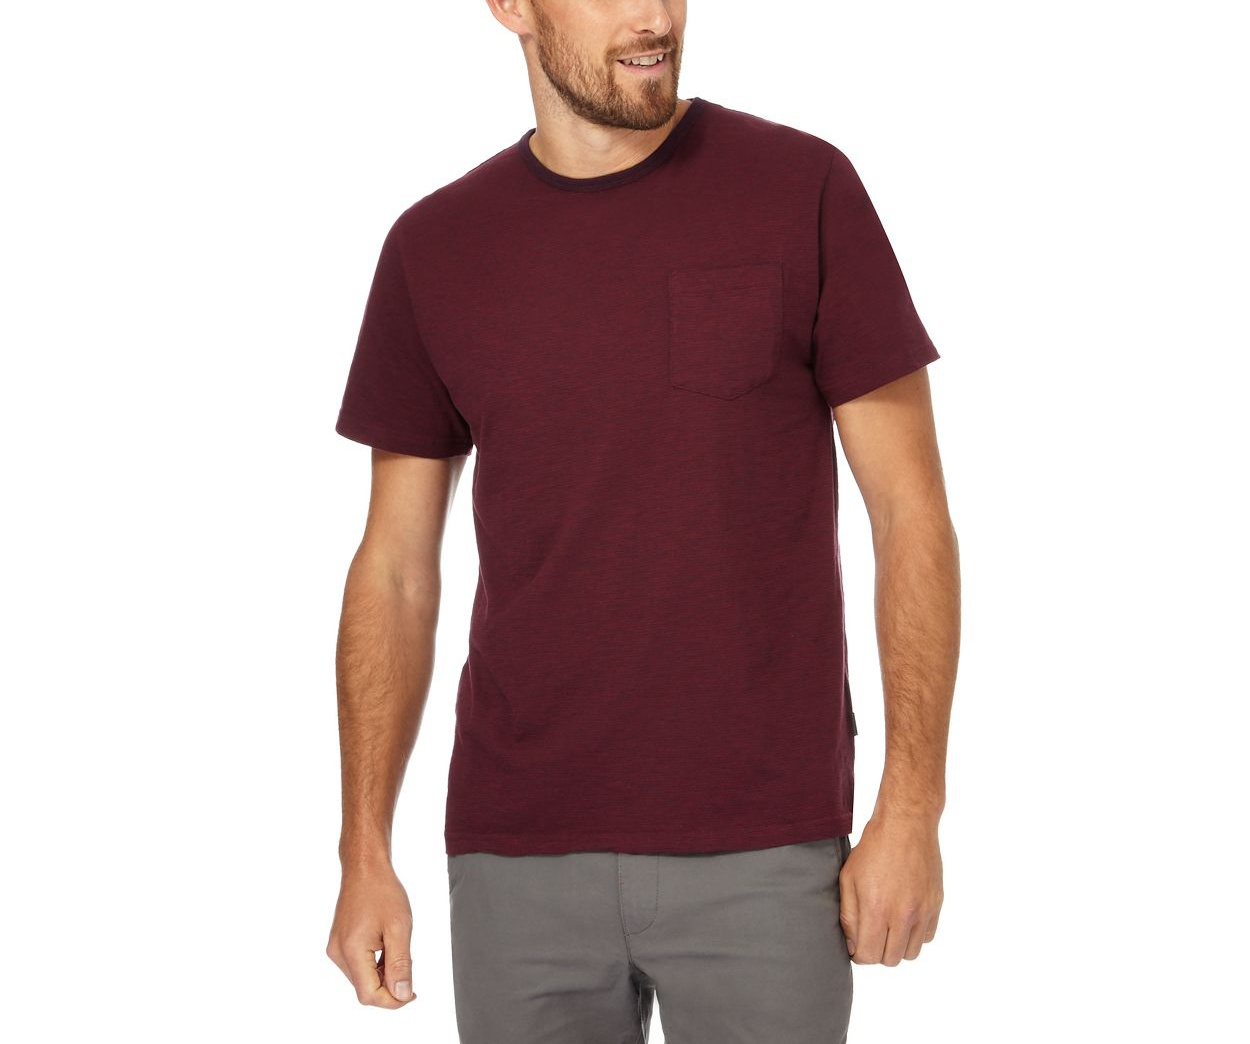 Racing Green Wine striped pocket t-shirt